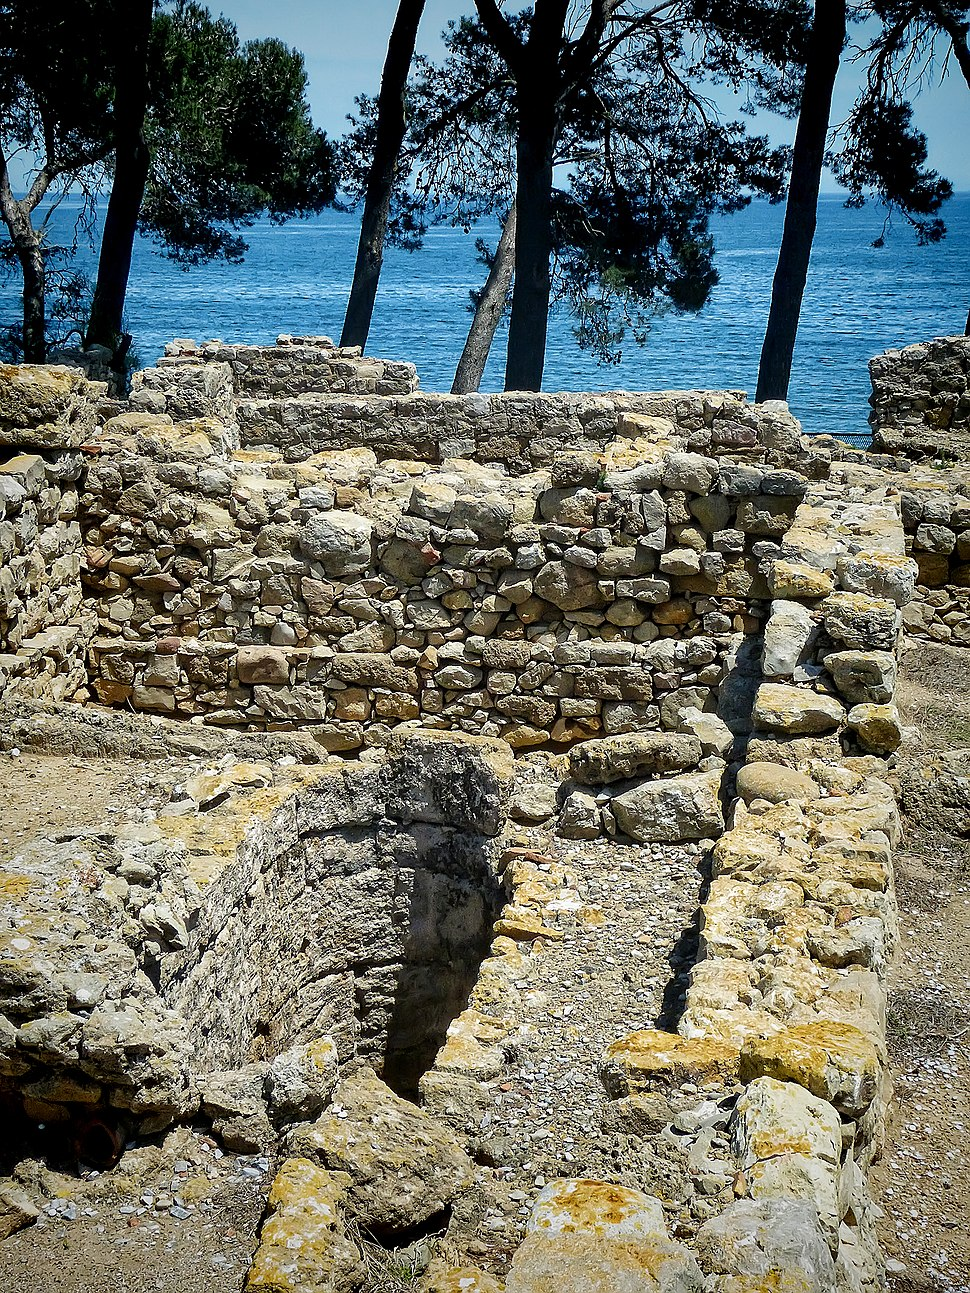 Remains of a cistern in the ancient Greek city of Neapolis in the archaeological site of Empúries